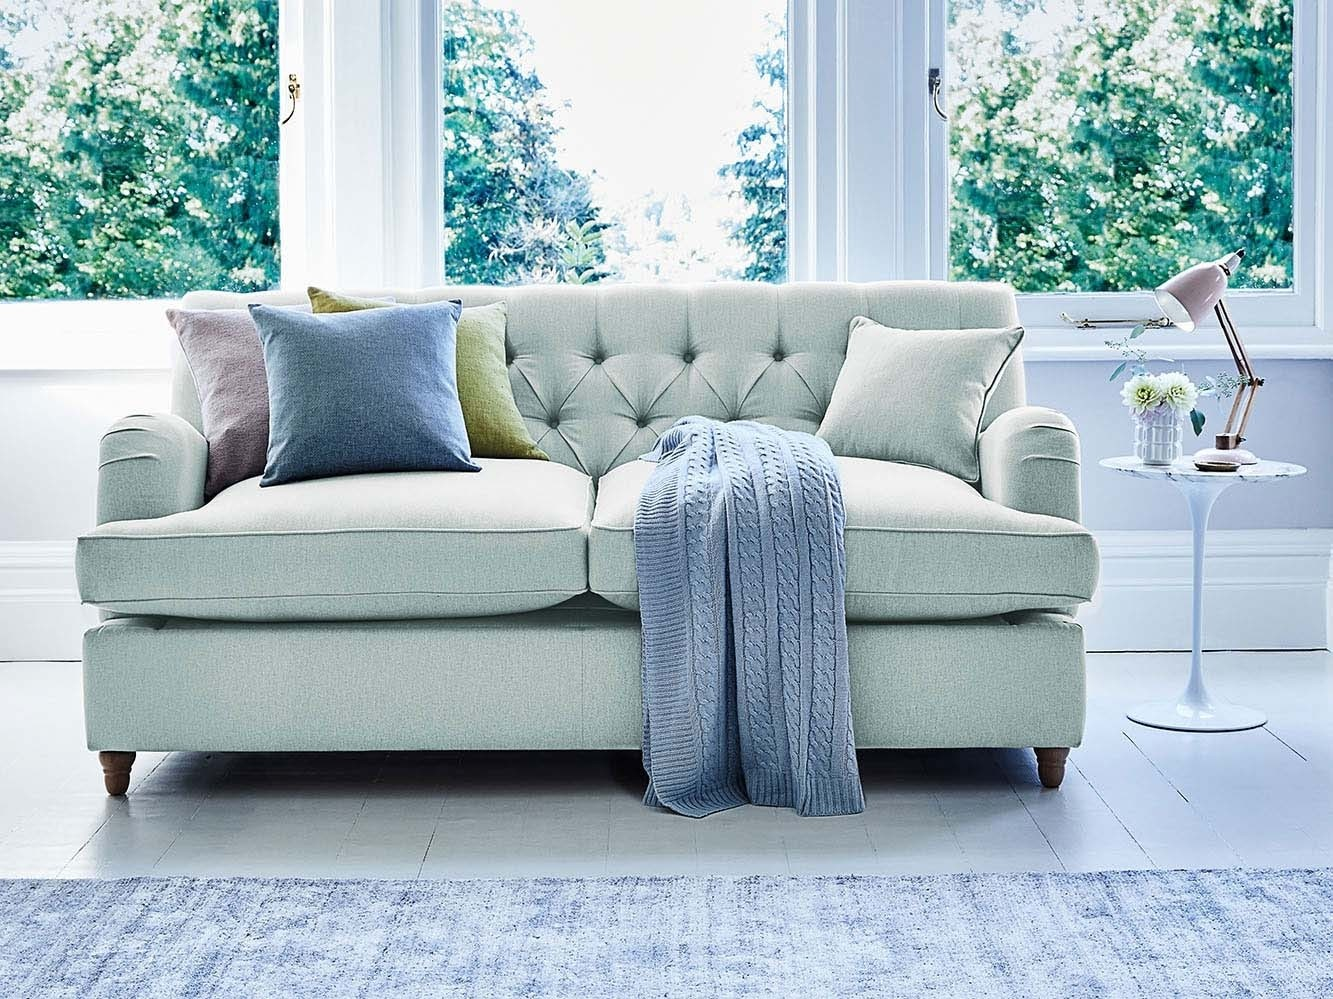 Foxcote sofa with button-back detailing